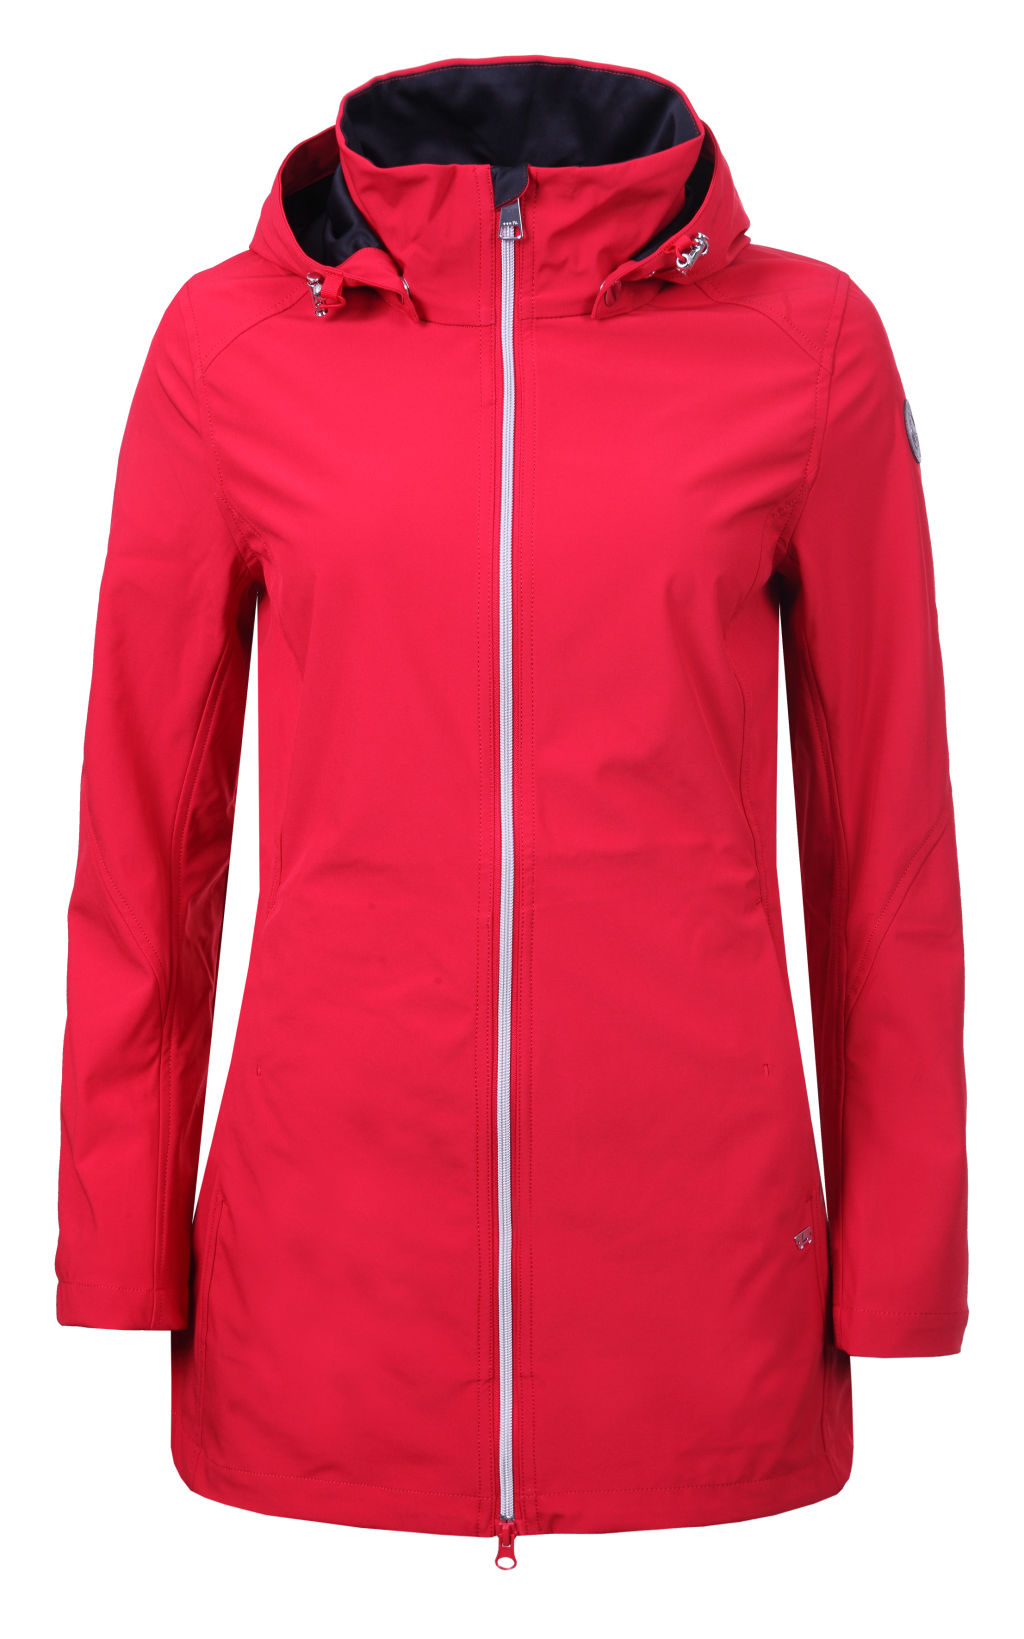 Luhta Marika D Jacket W - Naisten softshelltakki - Intersport f5bb6b0870